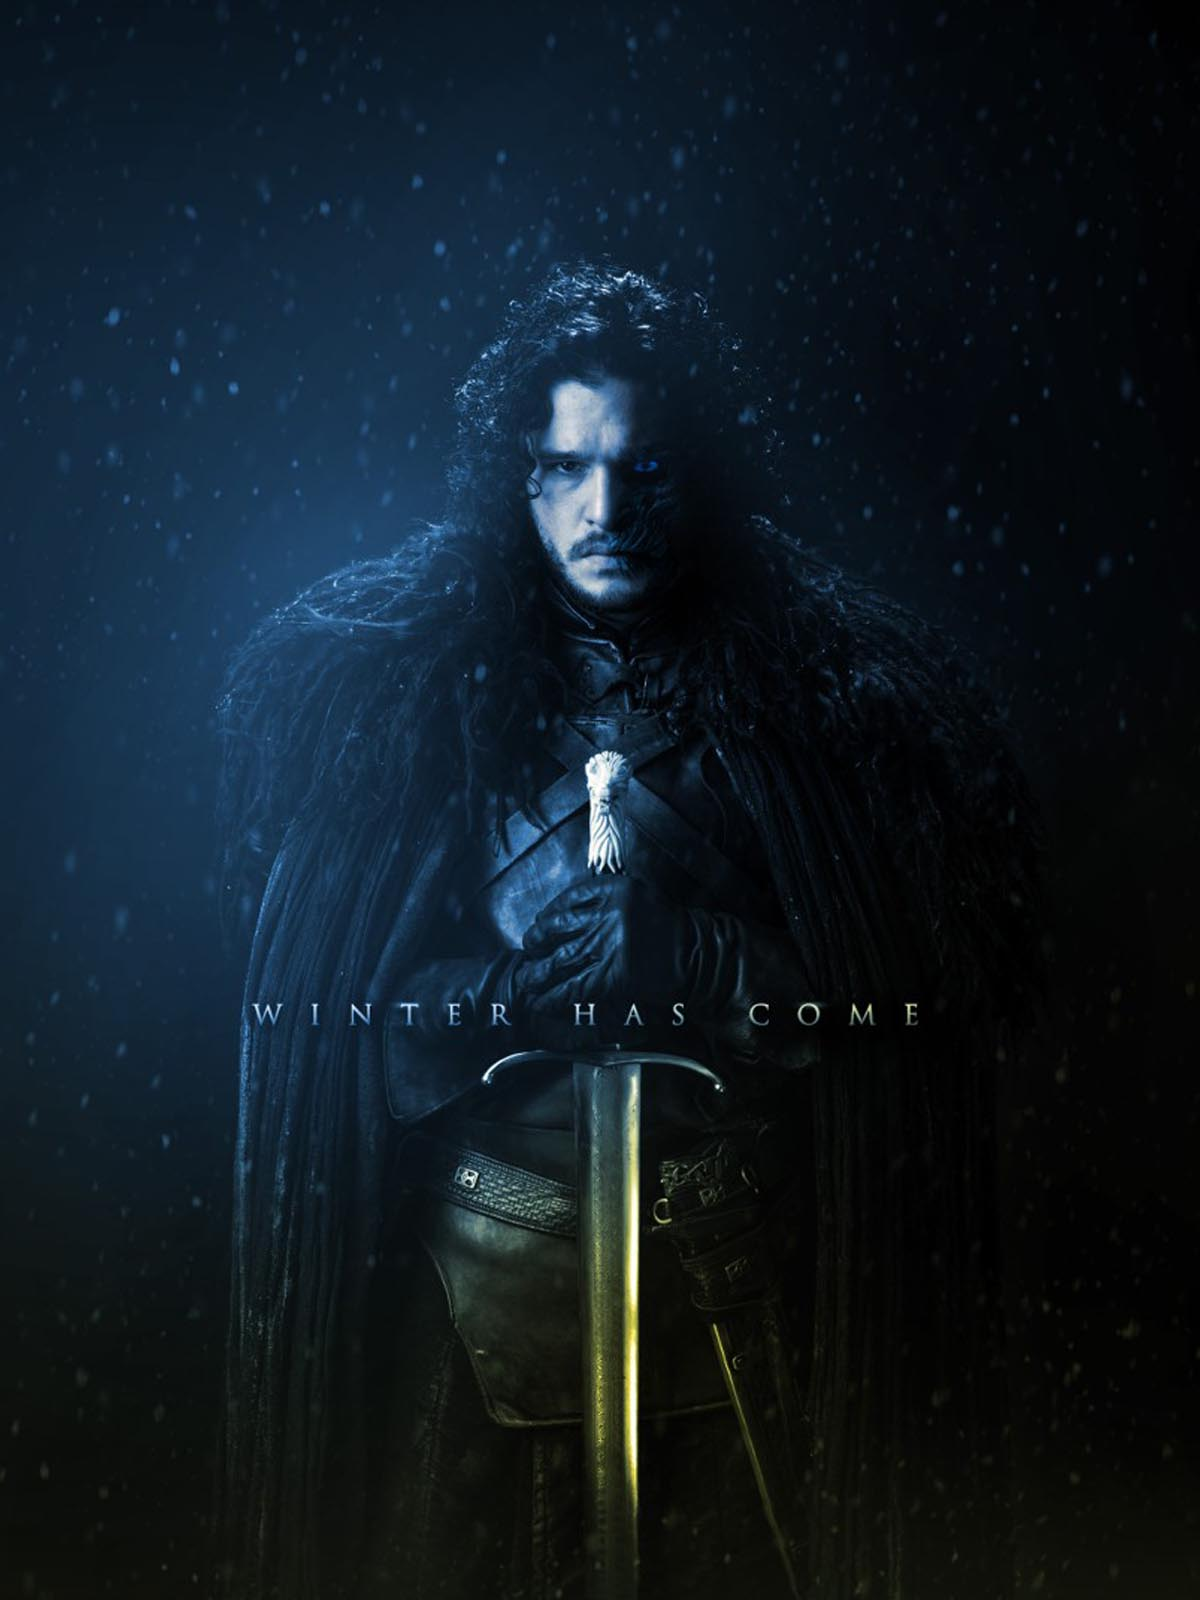 Download Game Of Thrones 7 Winter Has Come Free Pure 4k Ultra Hd